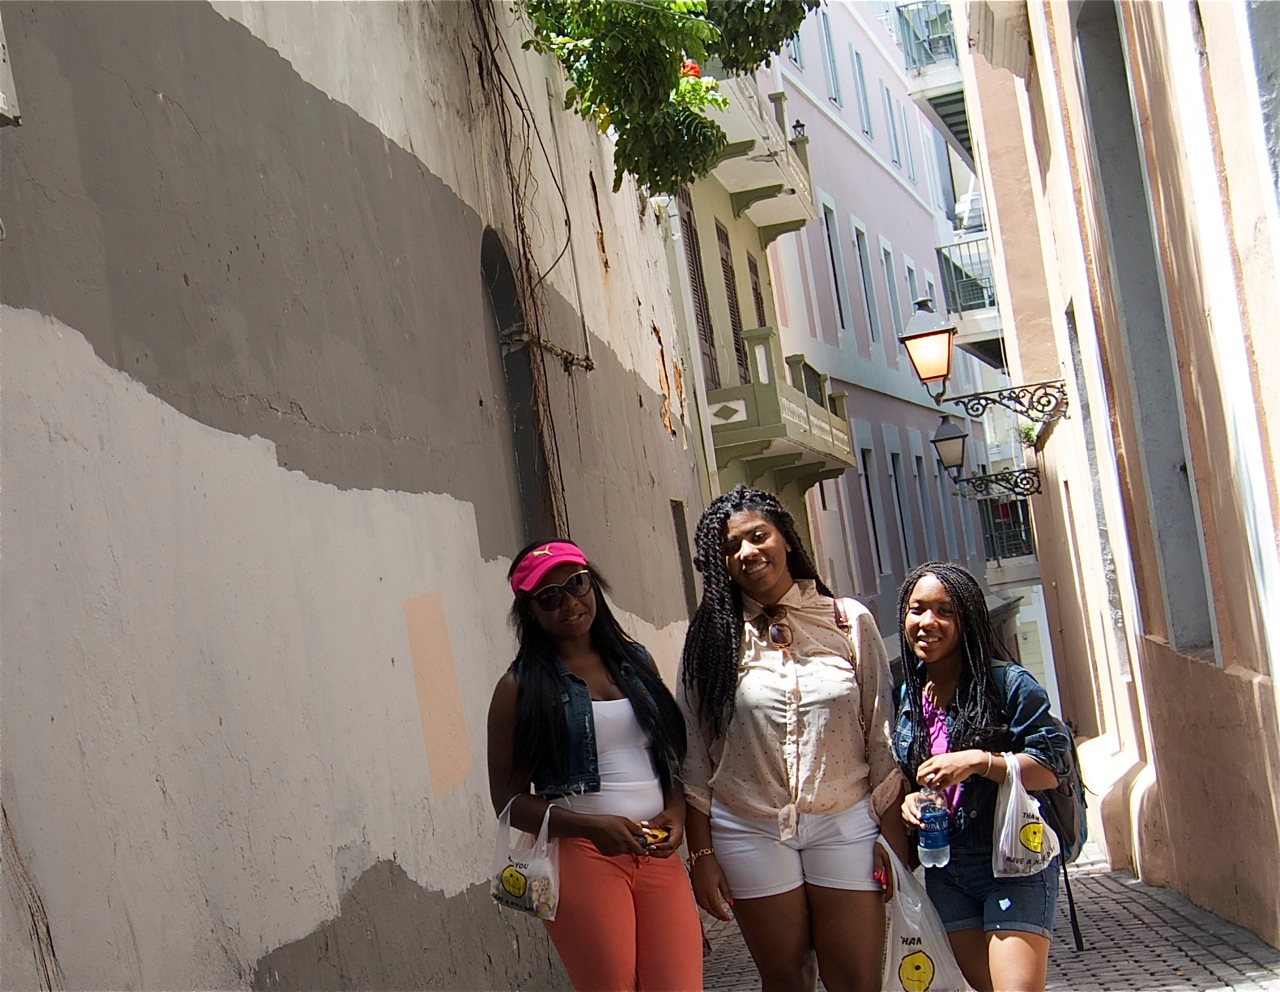 The streets of Old San Juan